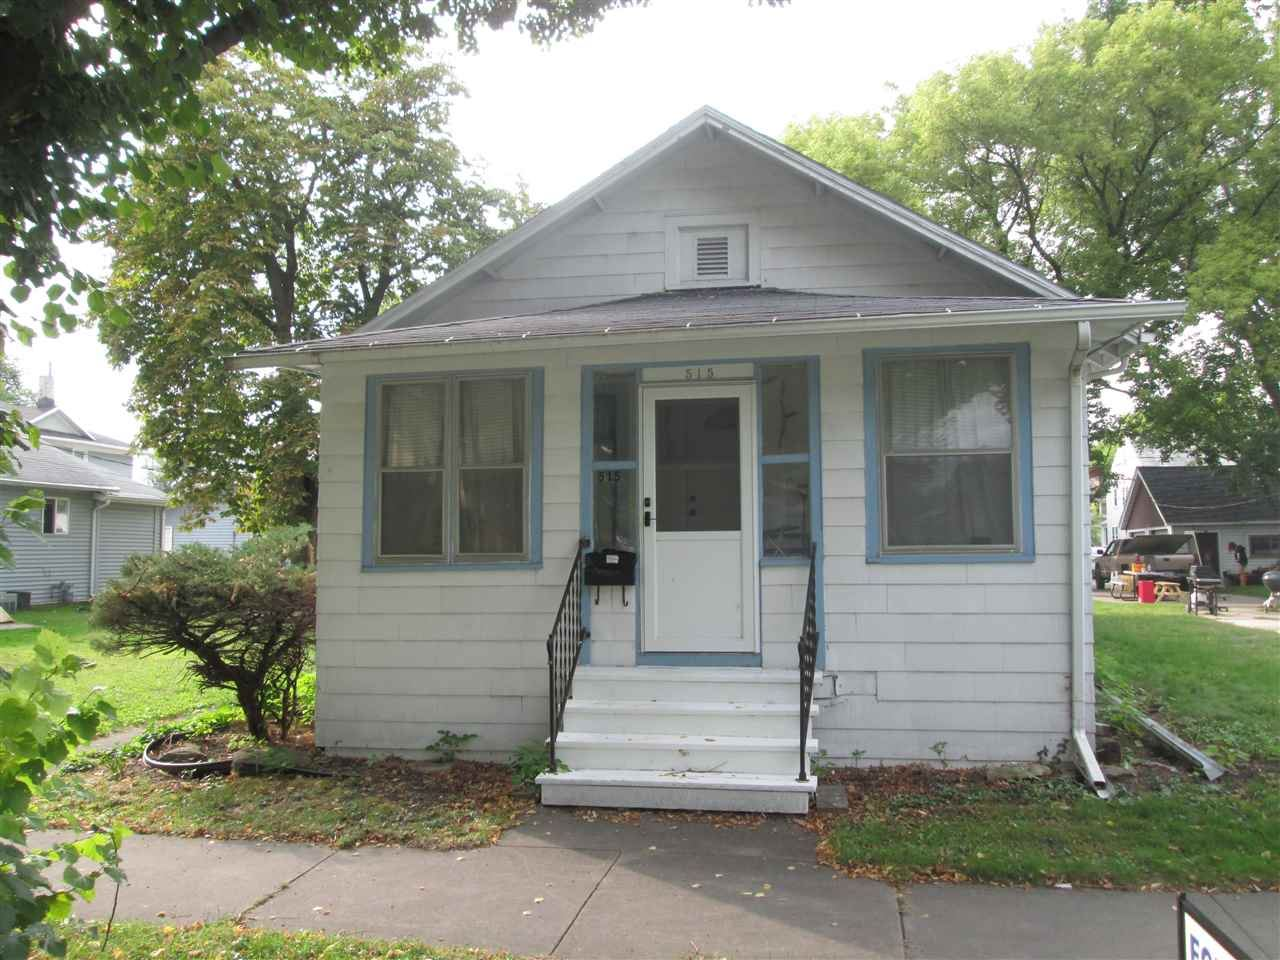 515 N MAPLE Street, Green Bay, WI 54303 - MLS#: 50229307